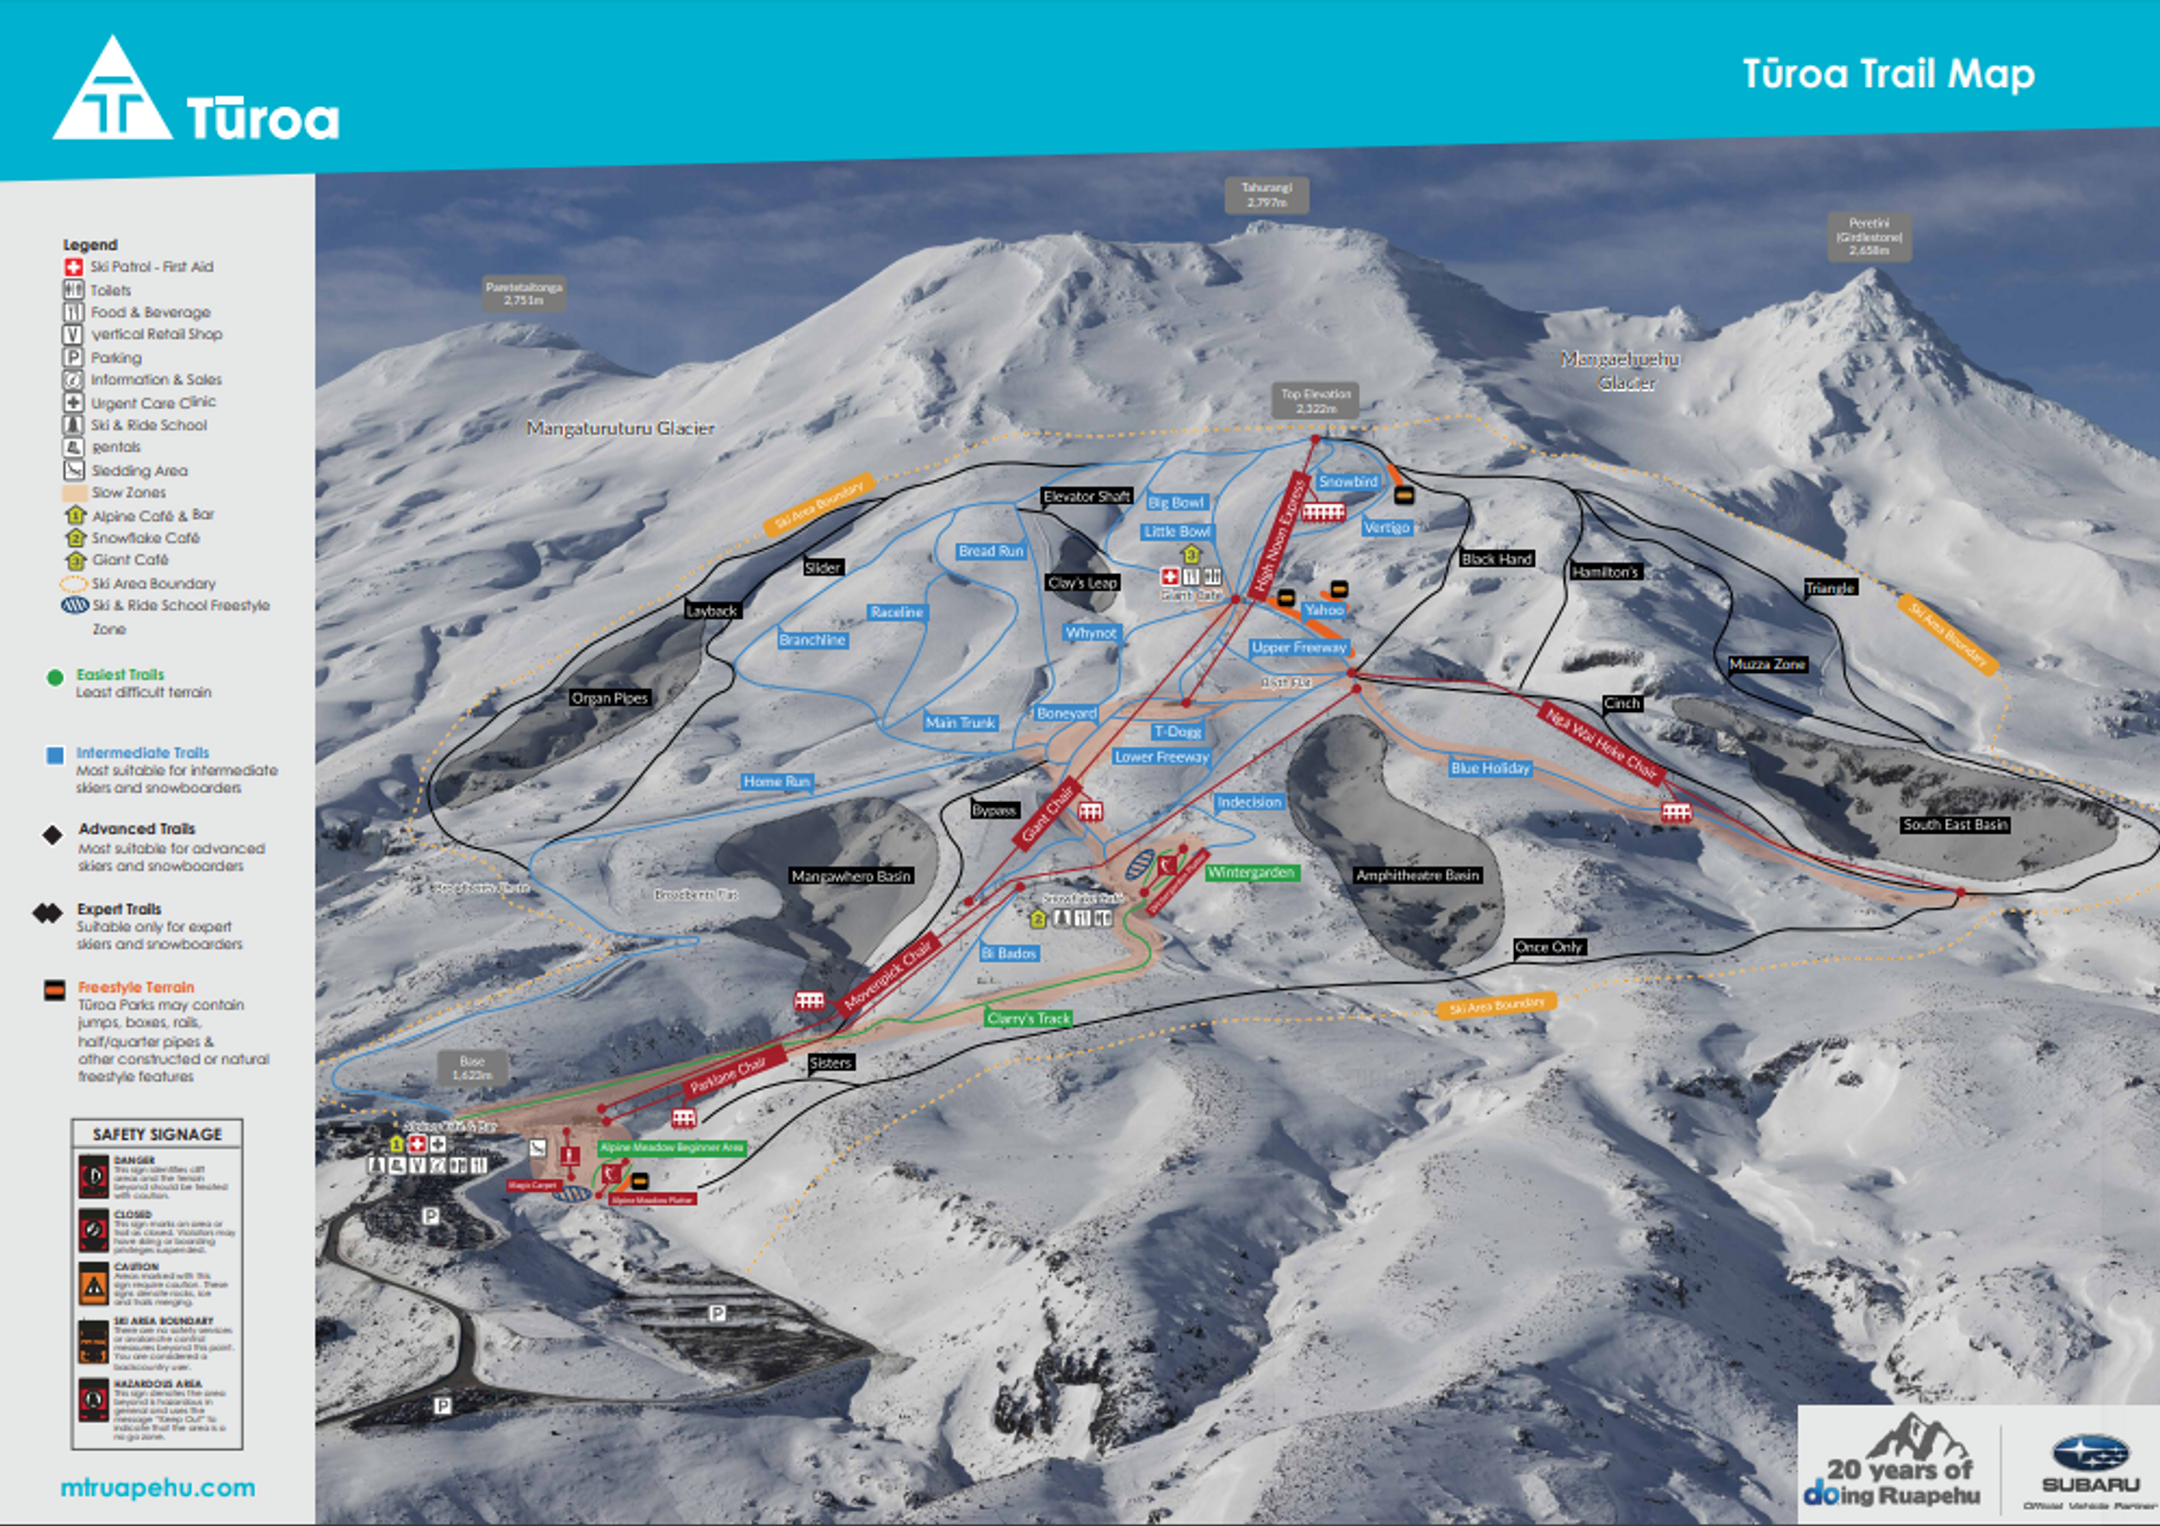 Turoa ski-resort-trail-map New Zealand ripatrip